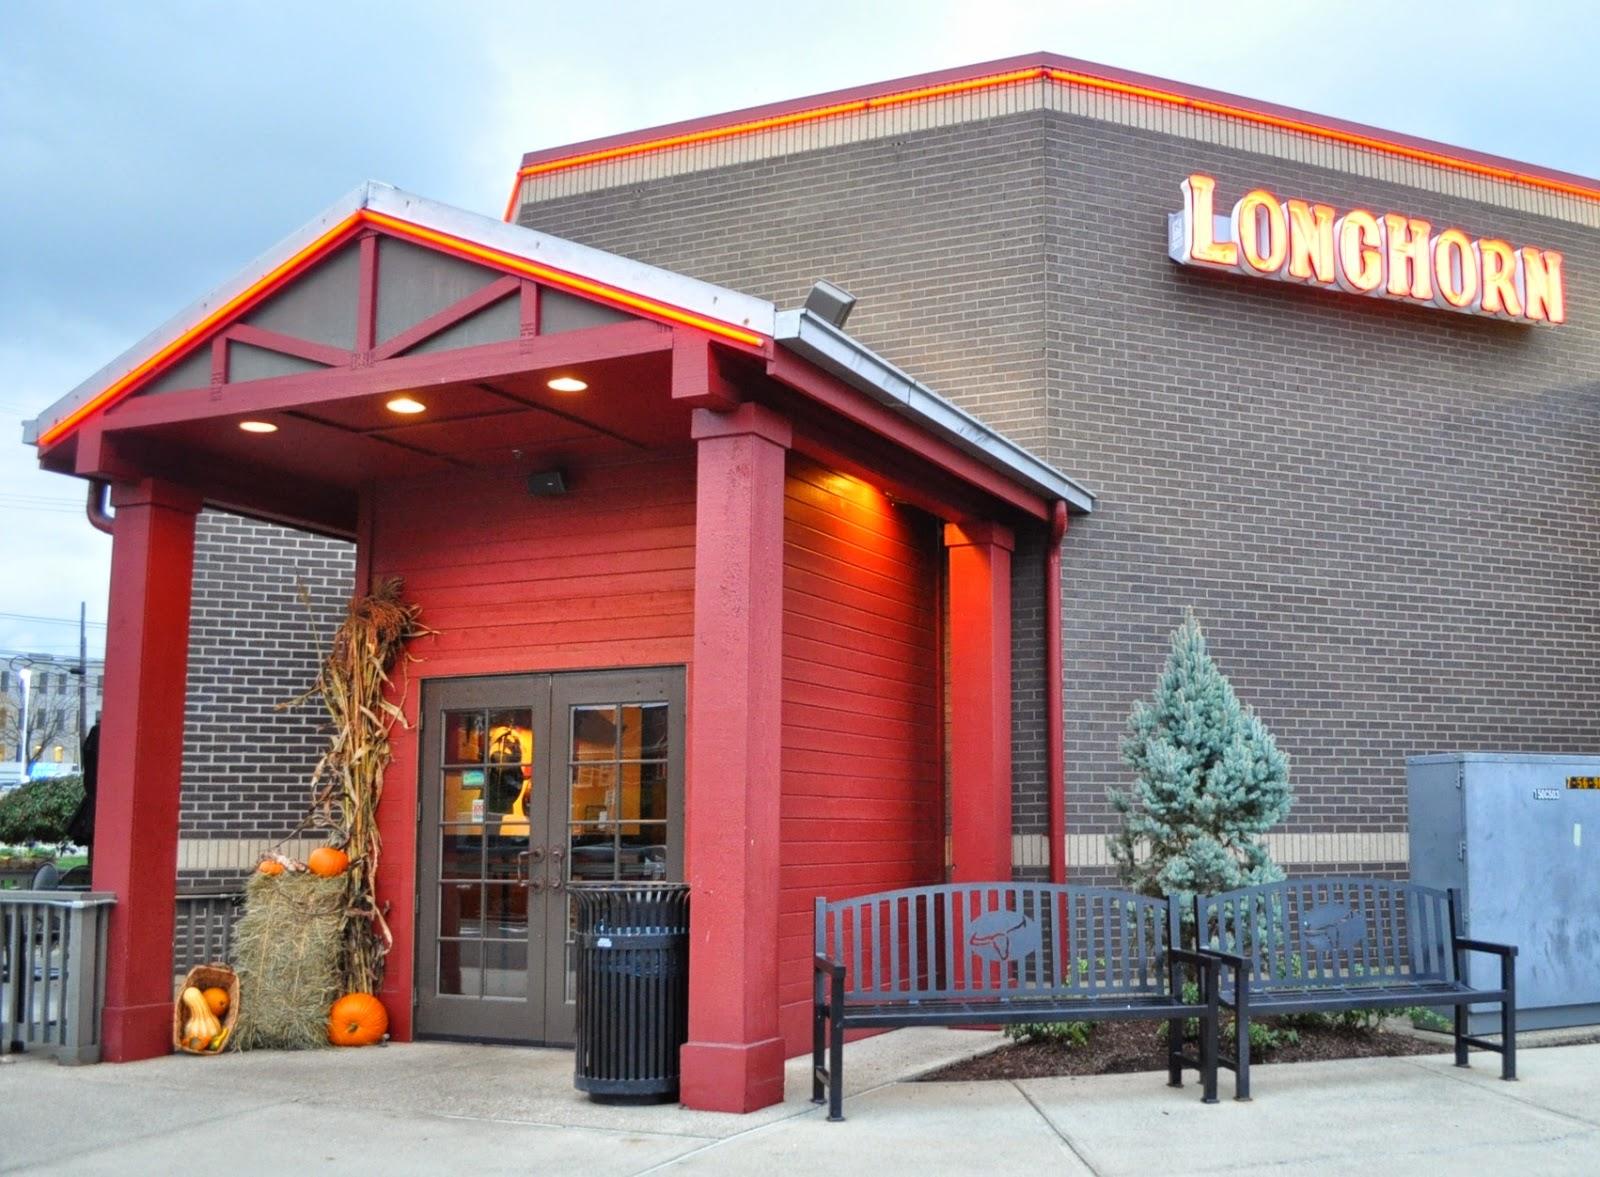 Restaurant Review: Longhorn Steakhouse | The Food Hussy!